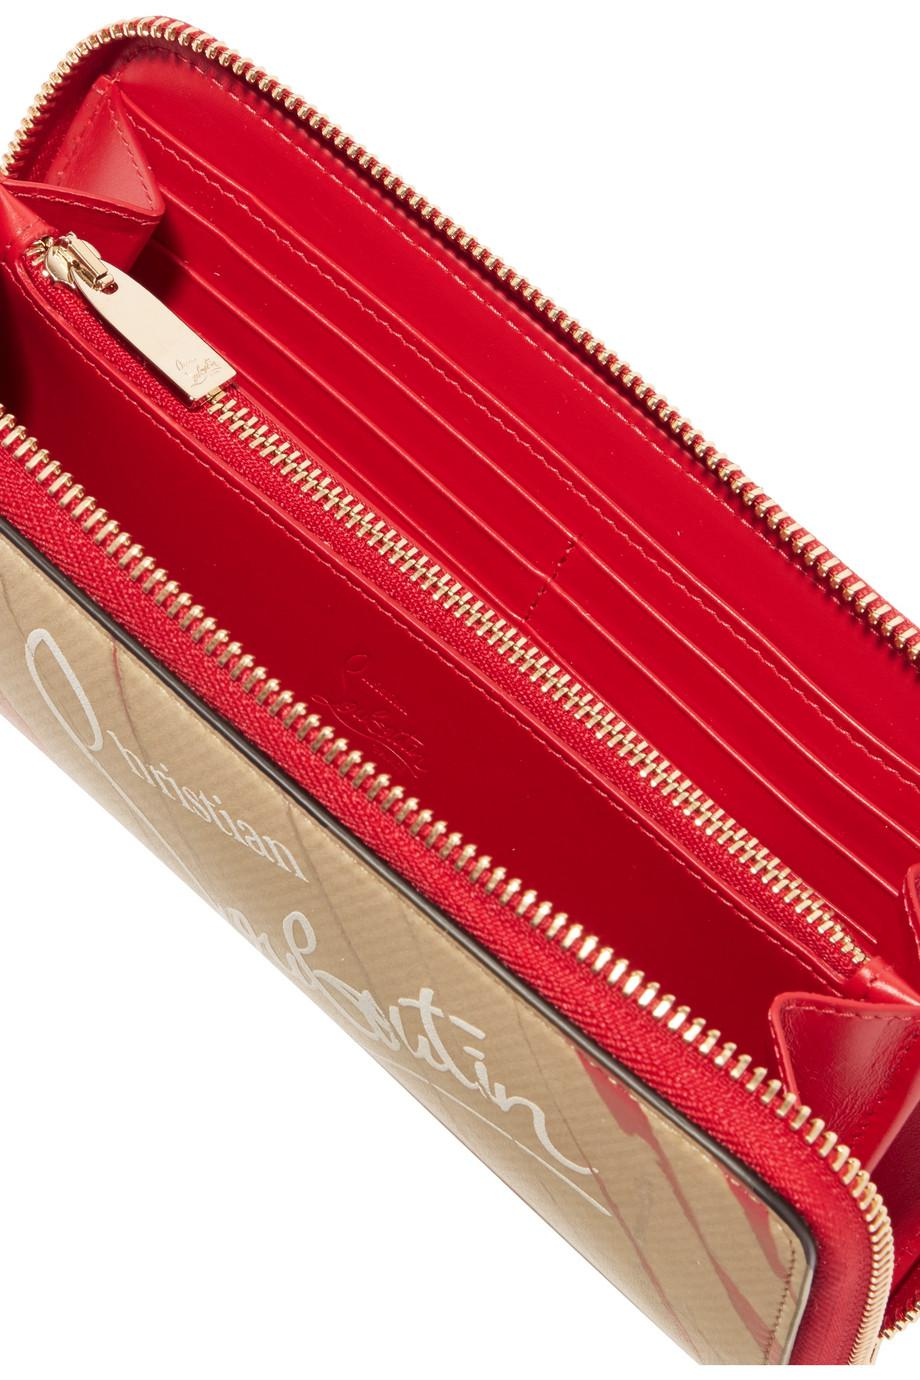 Panettone Kraft Printed Leather Continental Wallet - Red Christian Louboutin Uy7gsIN